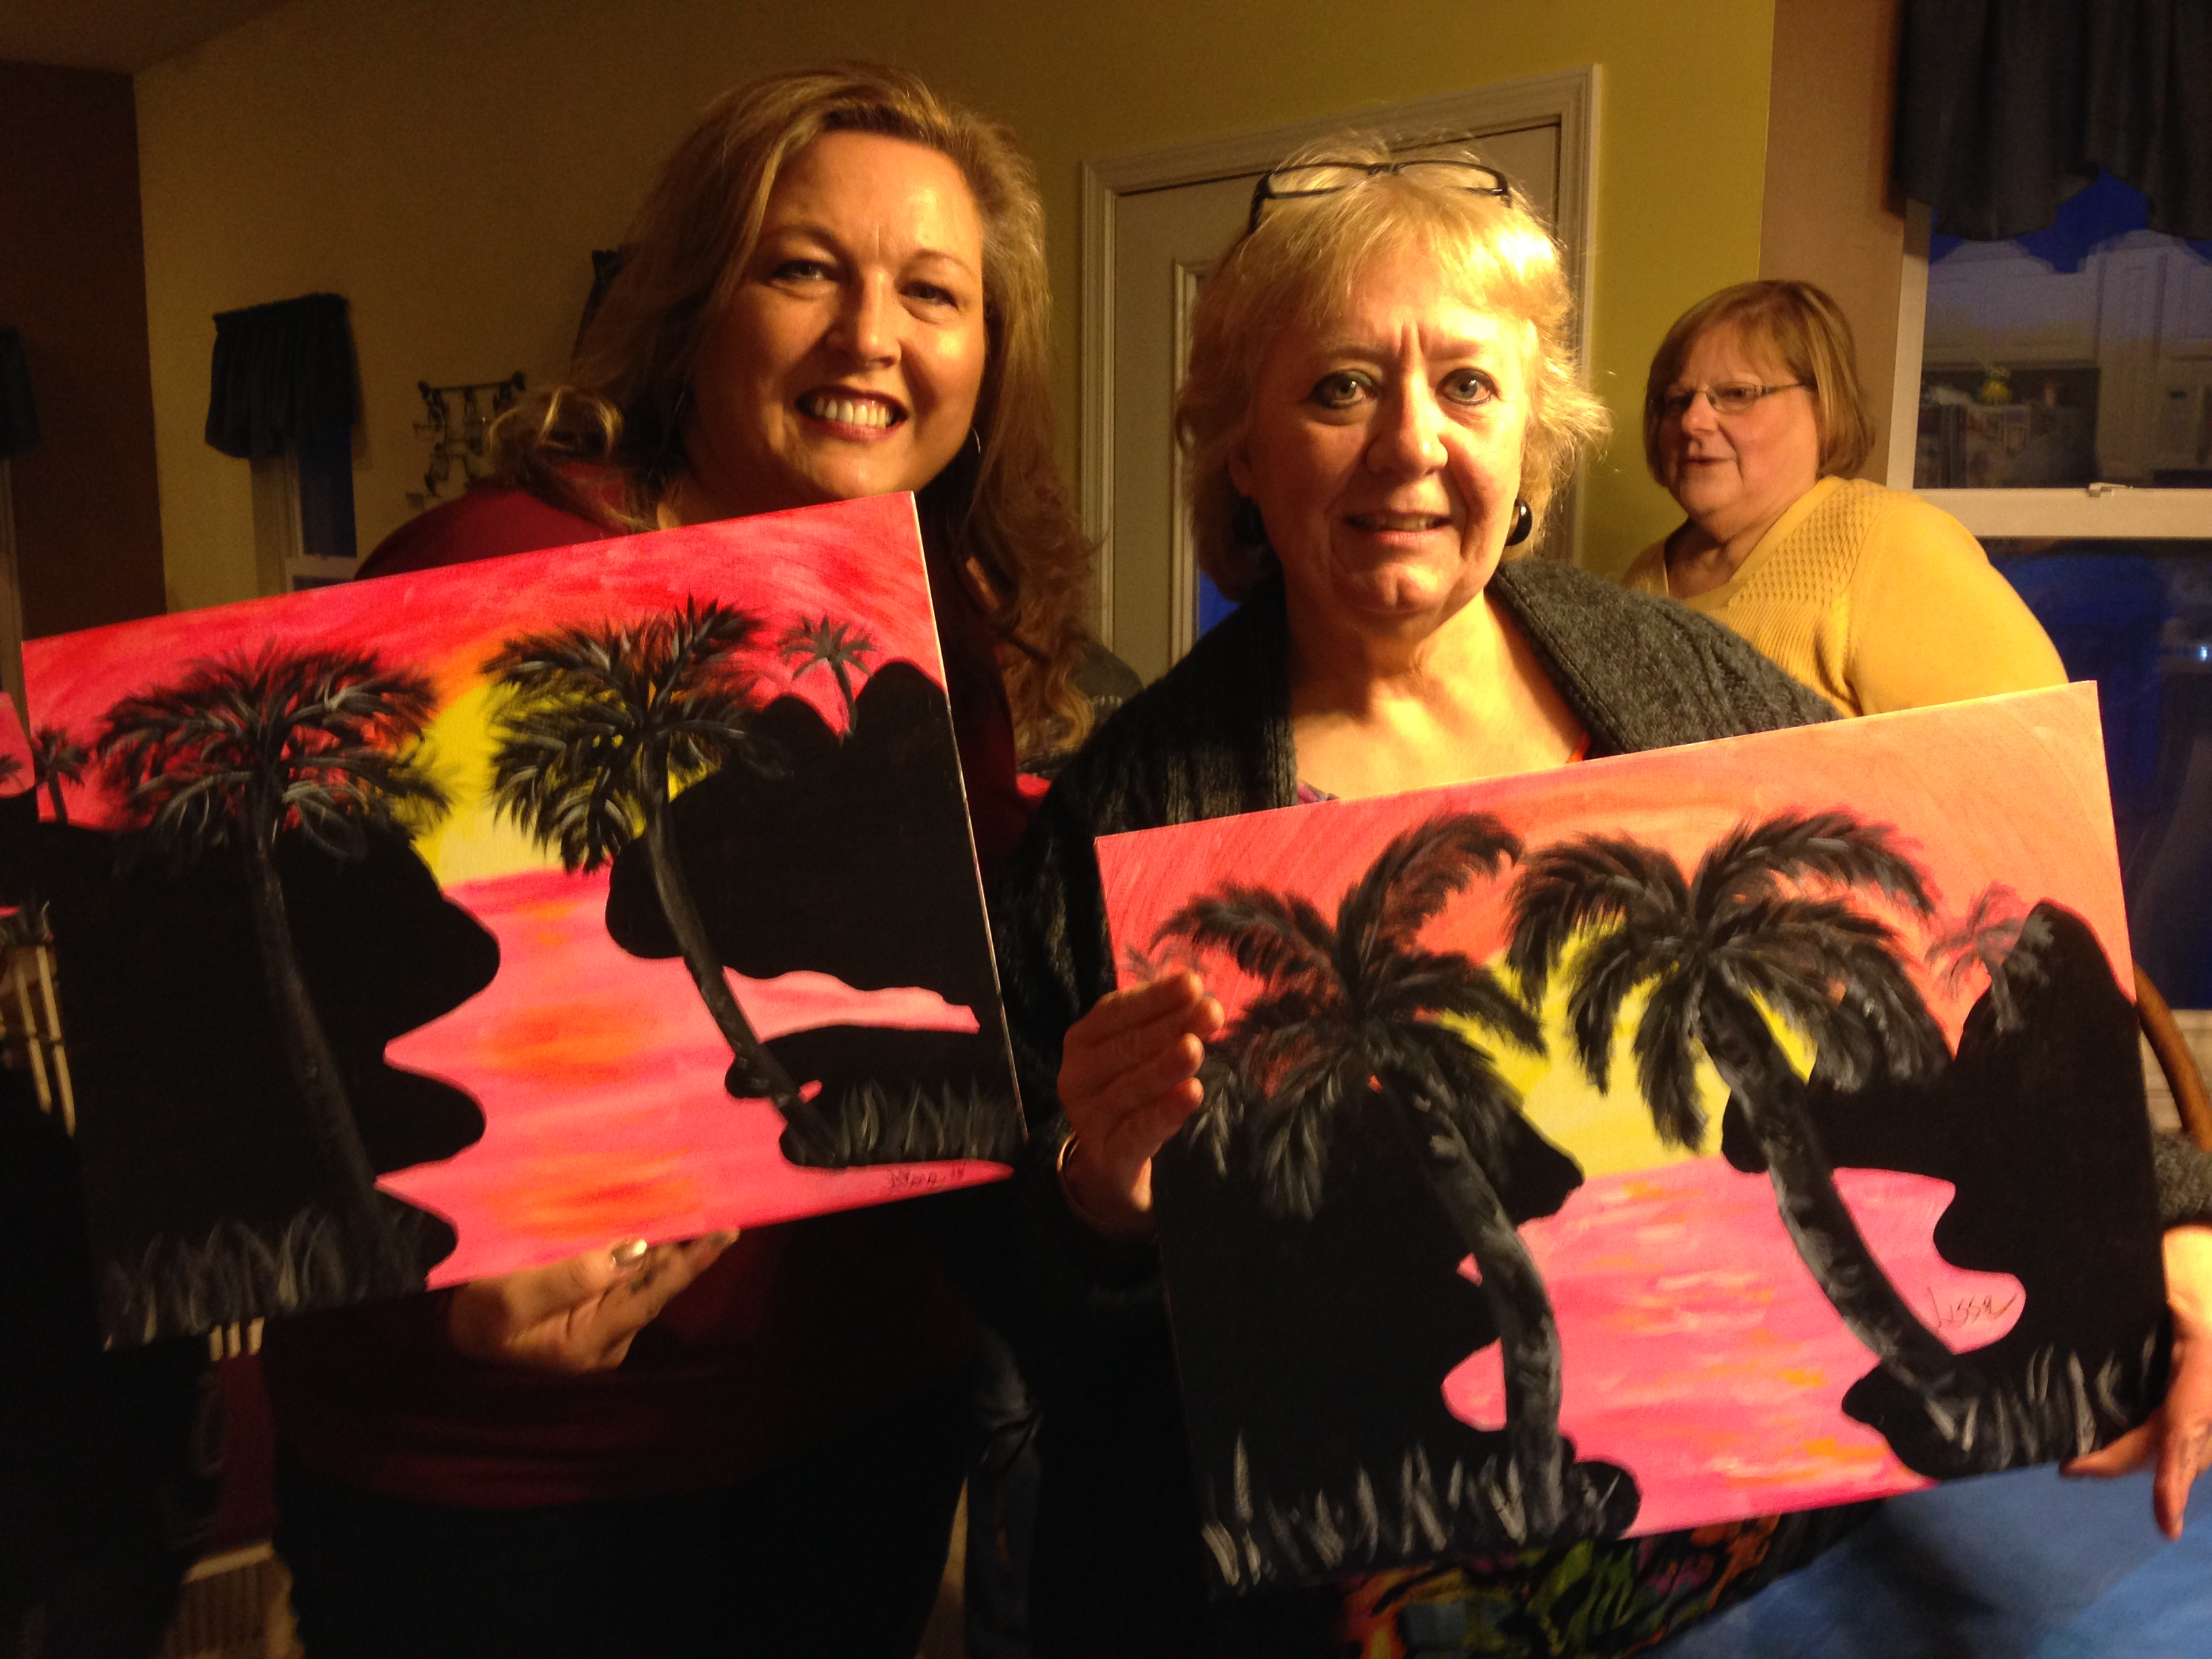 Chirssy Risotti paint party 4/9/16